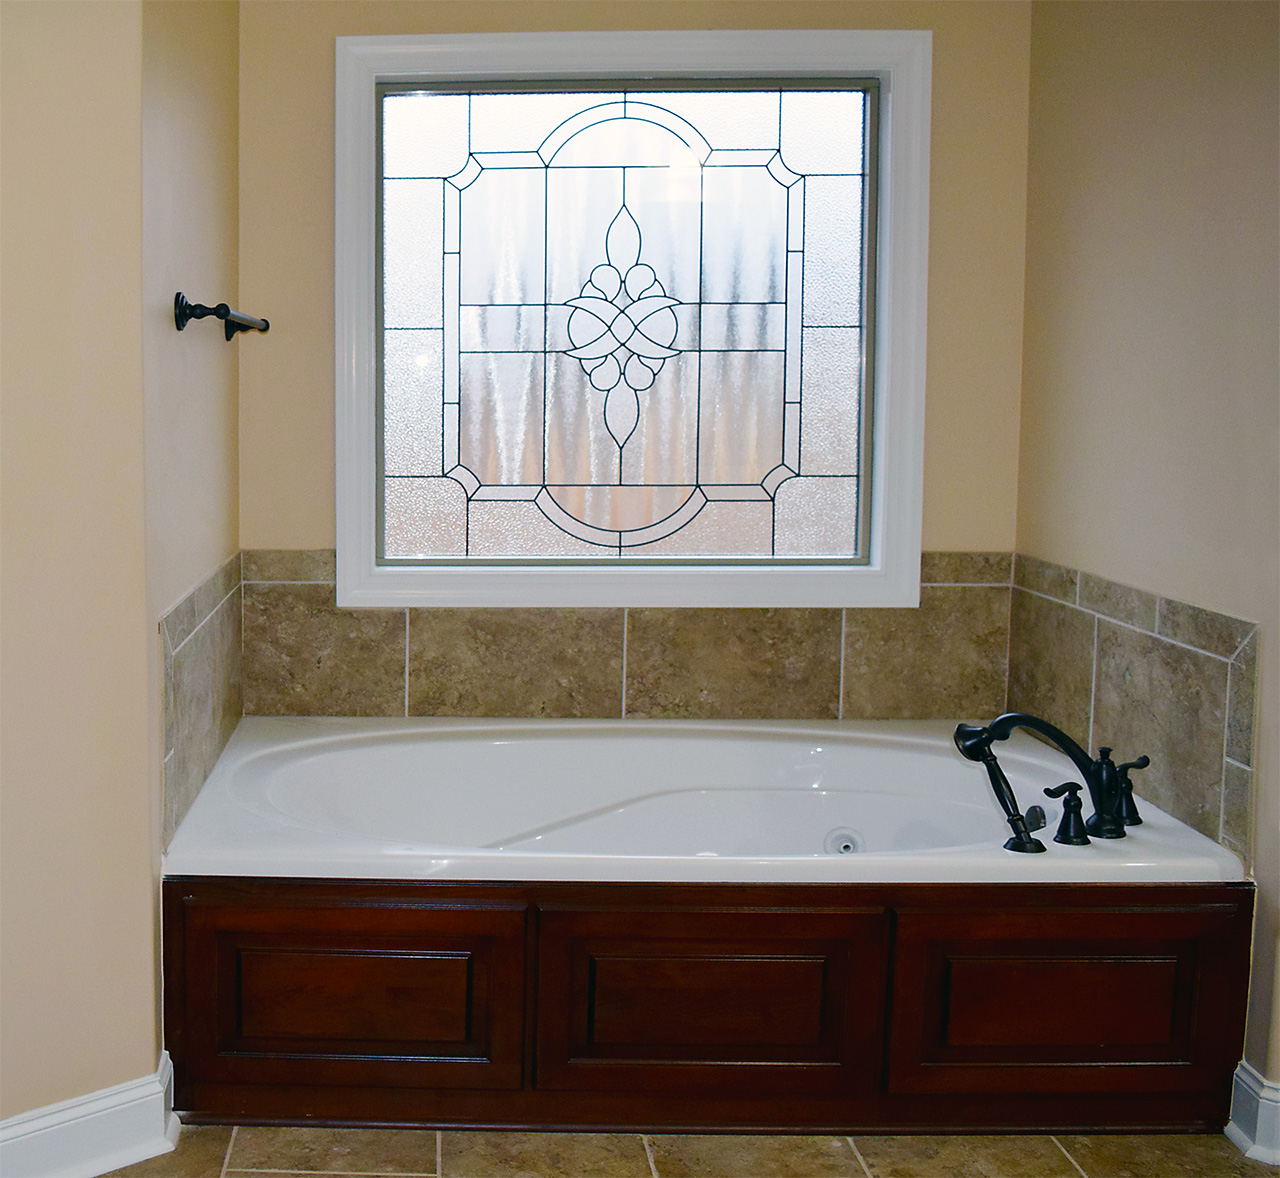 Hill Construction master bath tub.